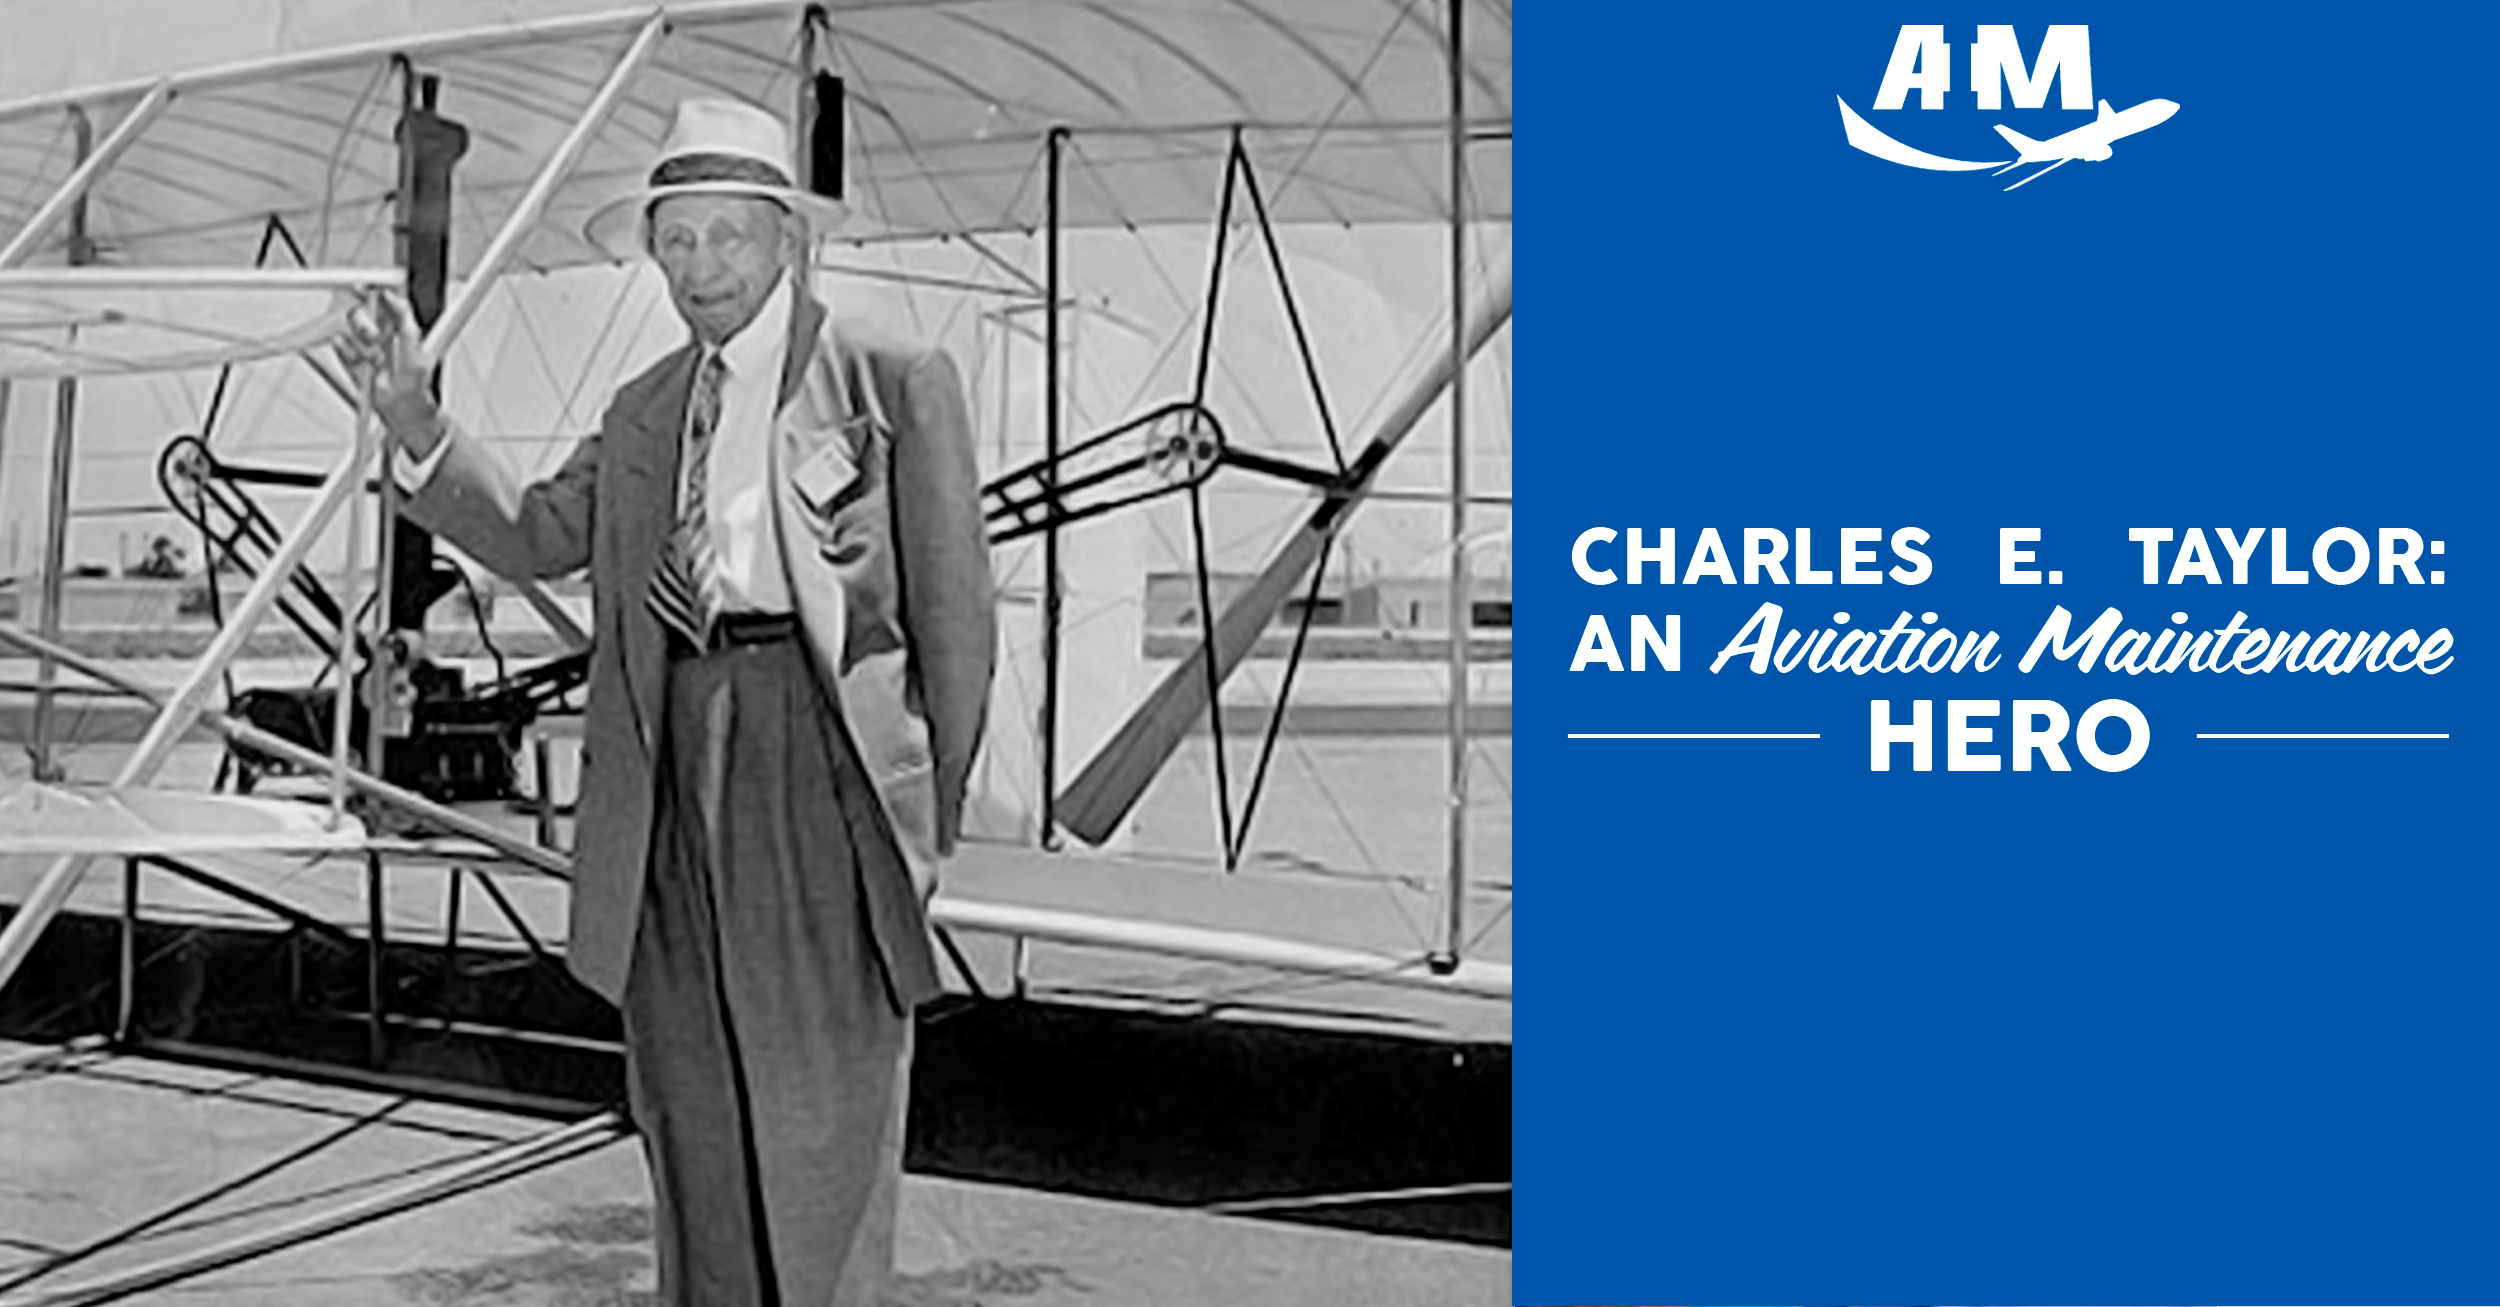 Charles E. Taylor: An Aviation Maintenance Hero - AIM